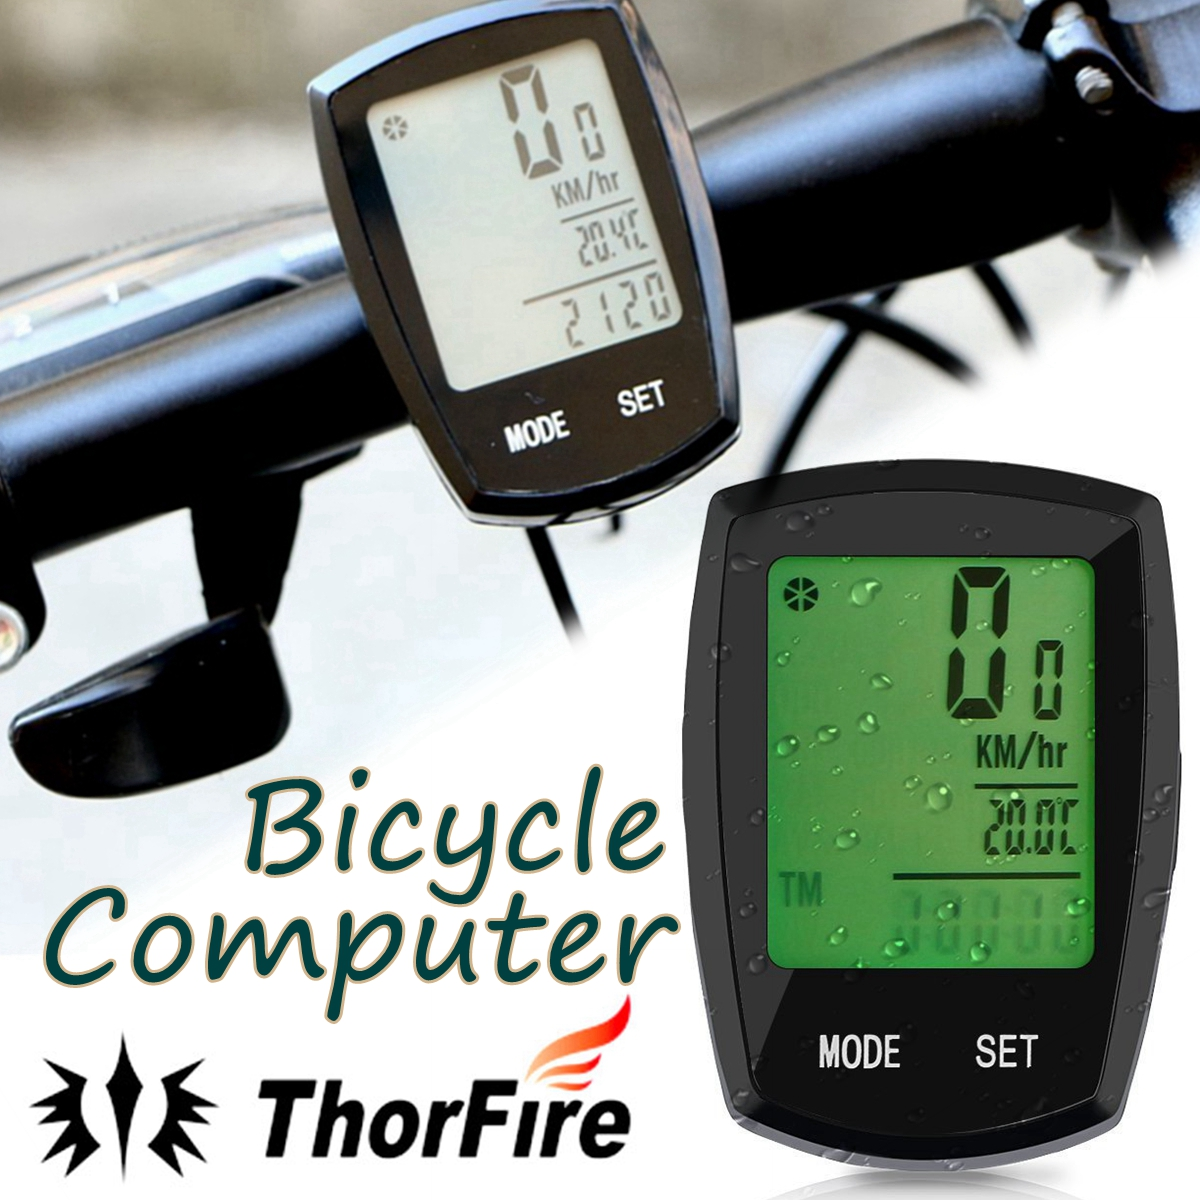 Wireless Day-Night 24 Functions Waterproof Cycling Computer,ThorFire Bike Computer Bicycle Speedometer Bike Odometer with Larger LCD wirelessbikecomputer Screen Display